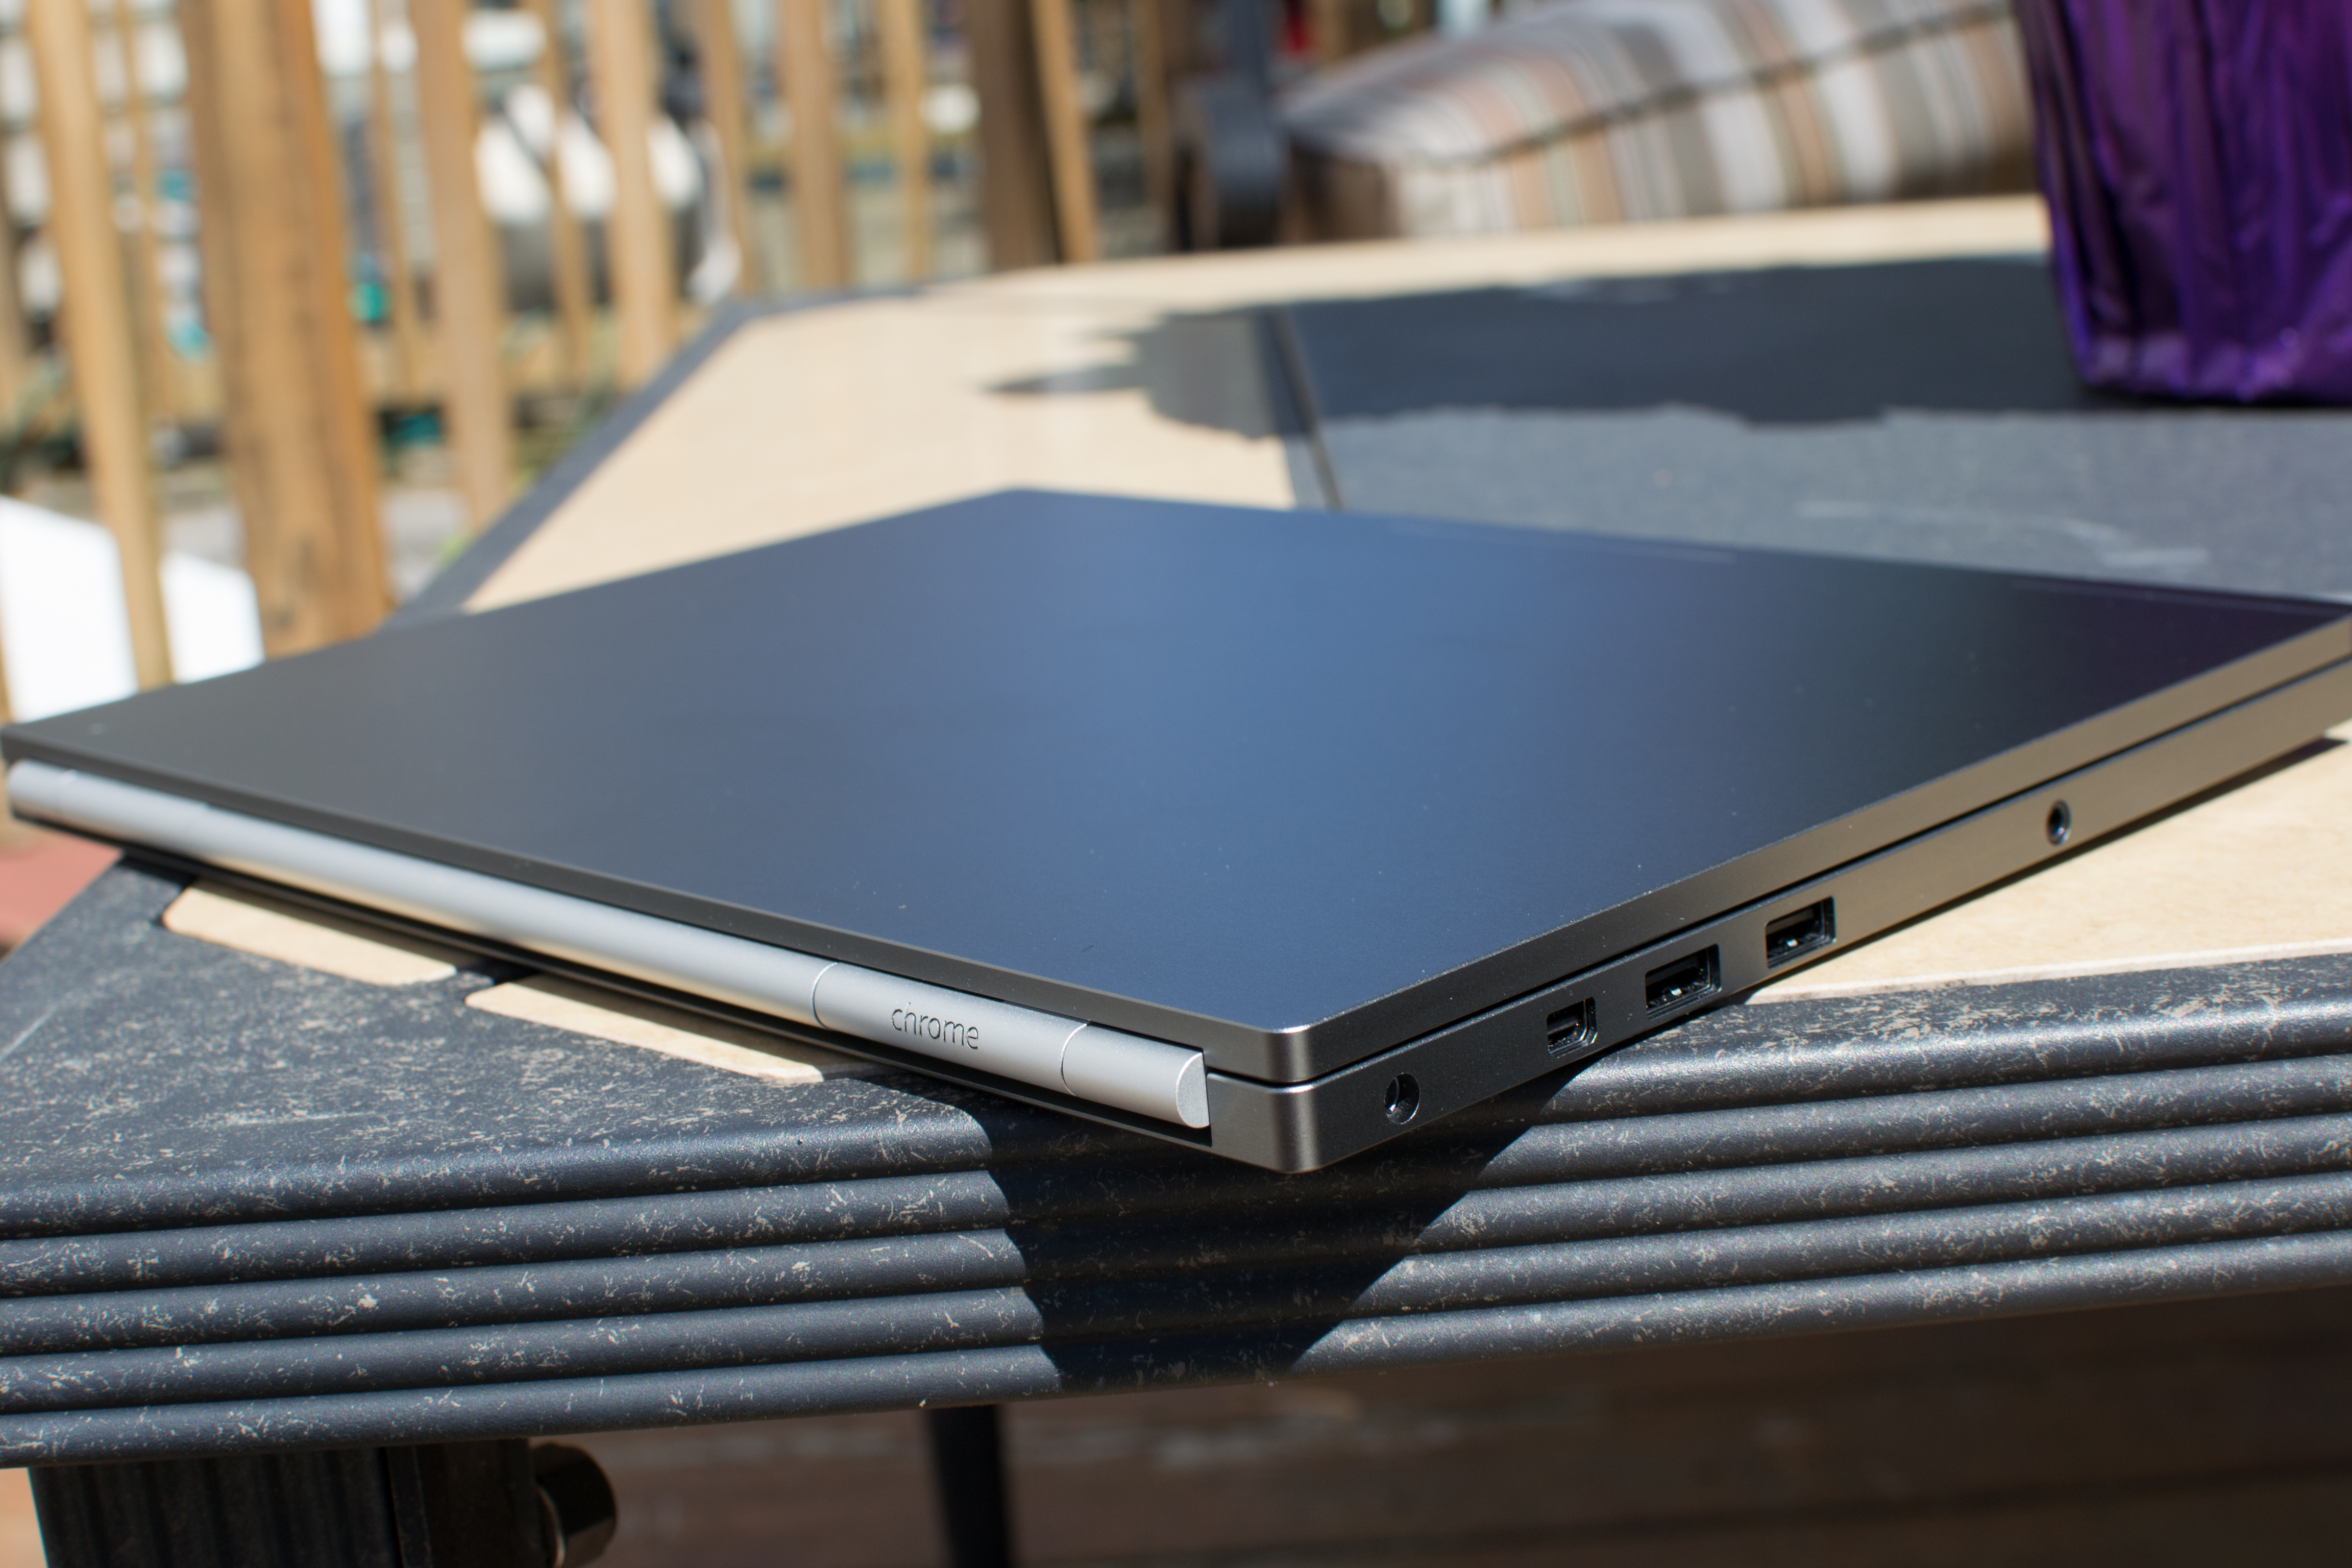 The Chromebook Pixel Review